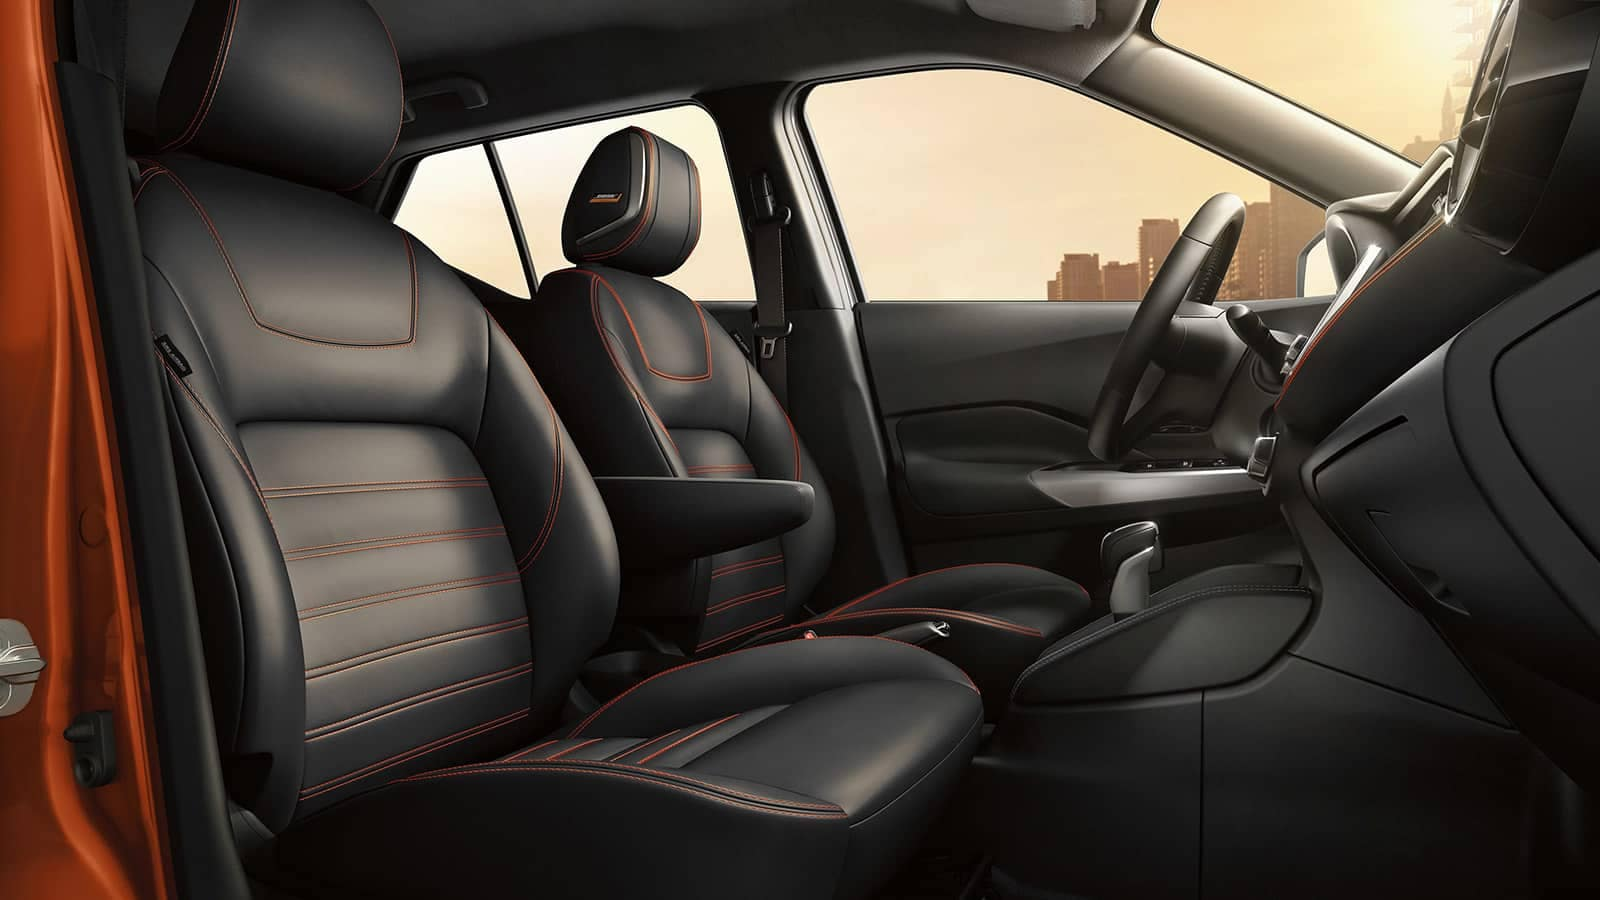 2019 Nissan Kicks seats